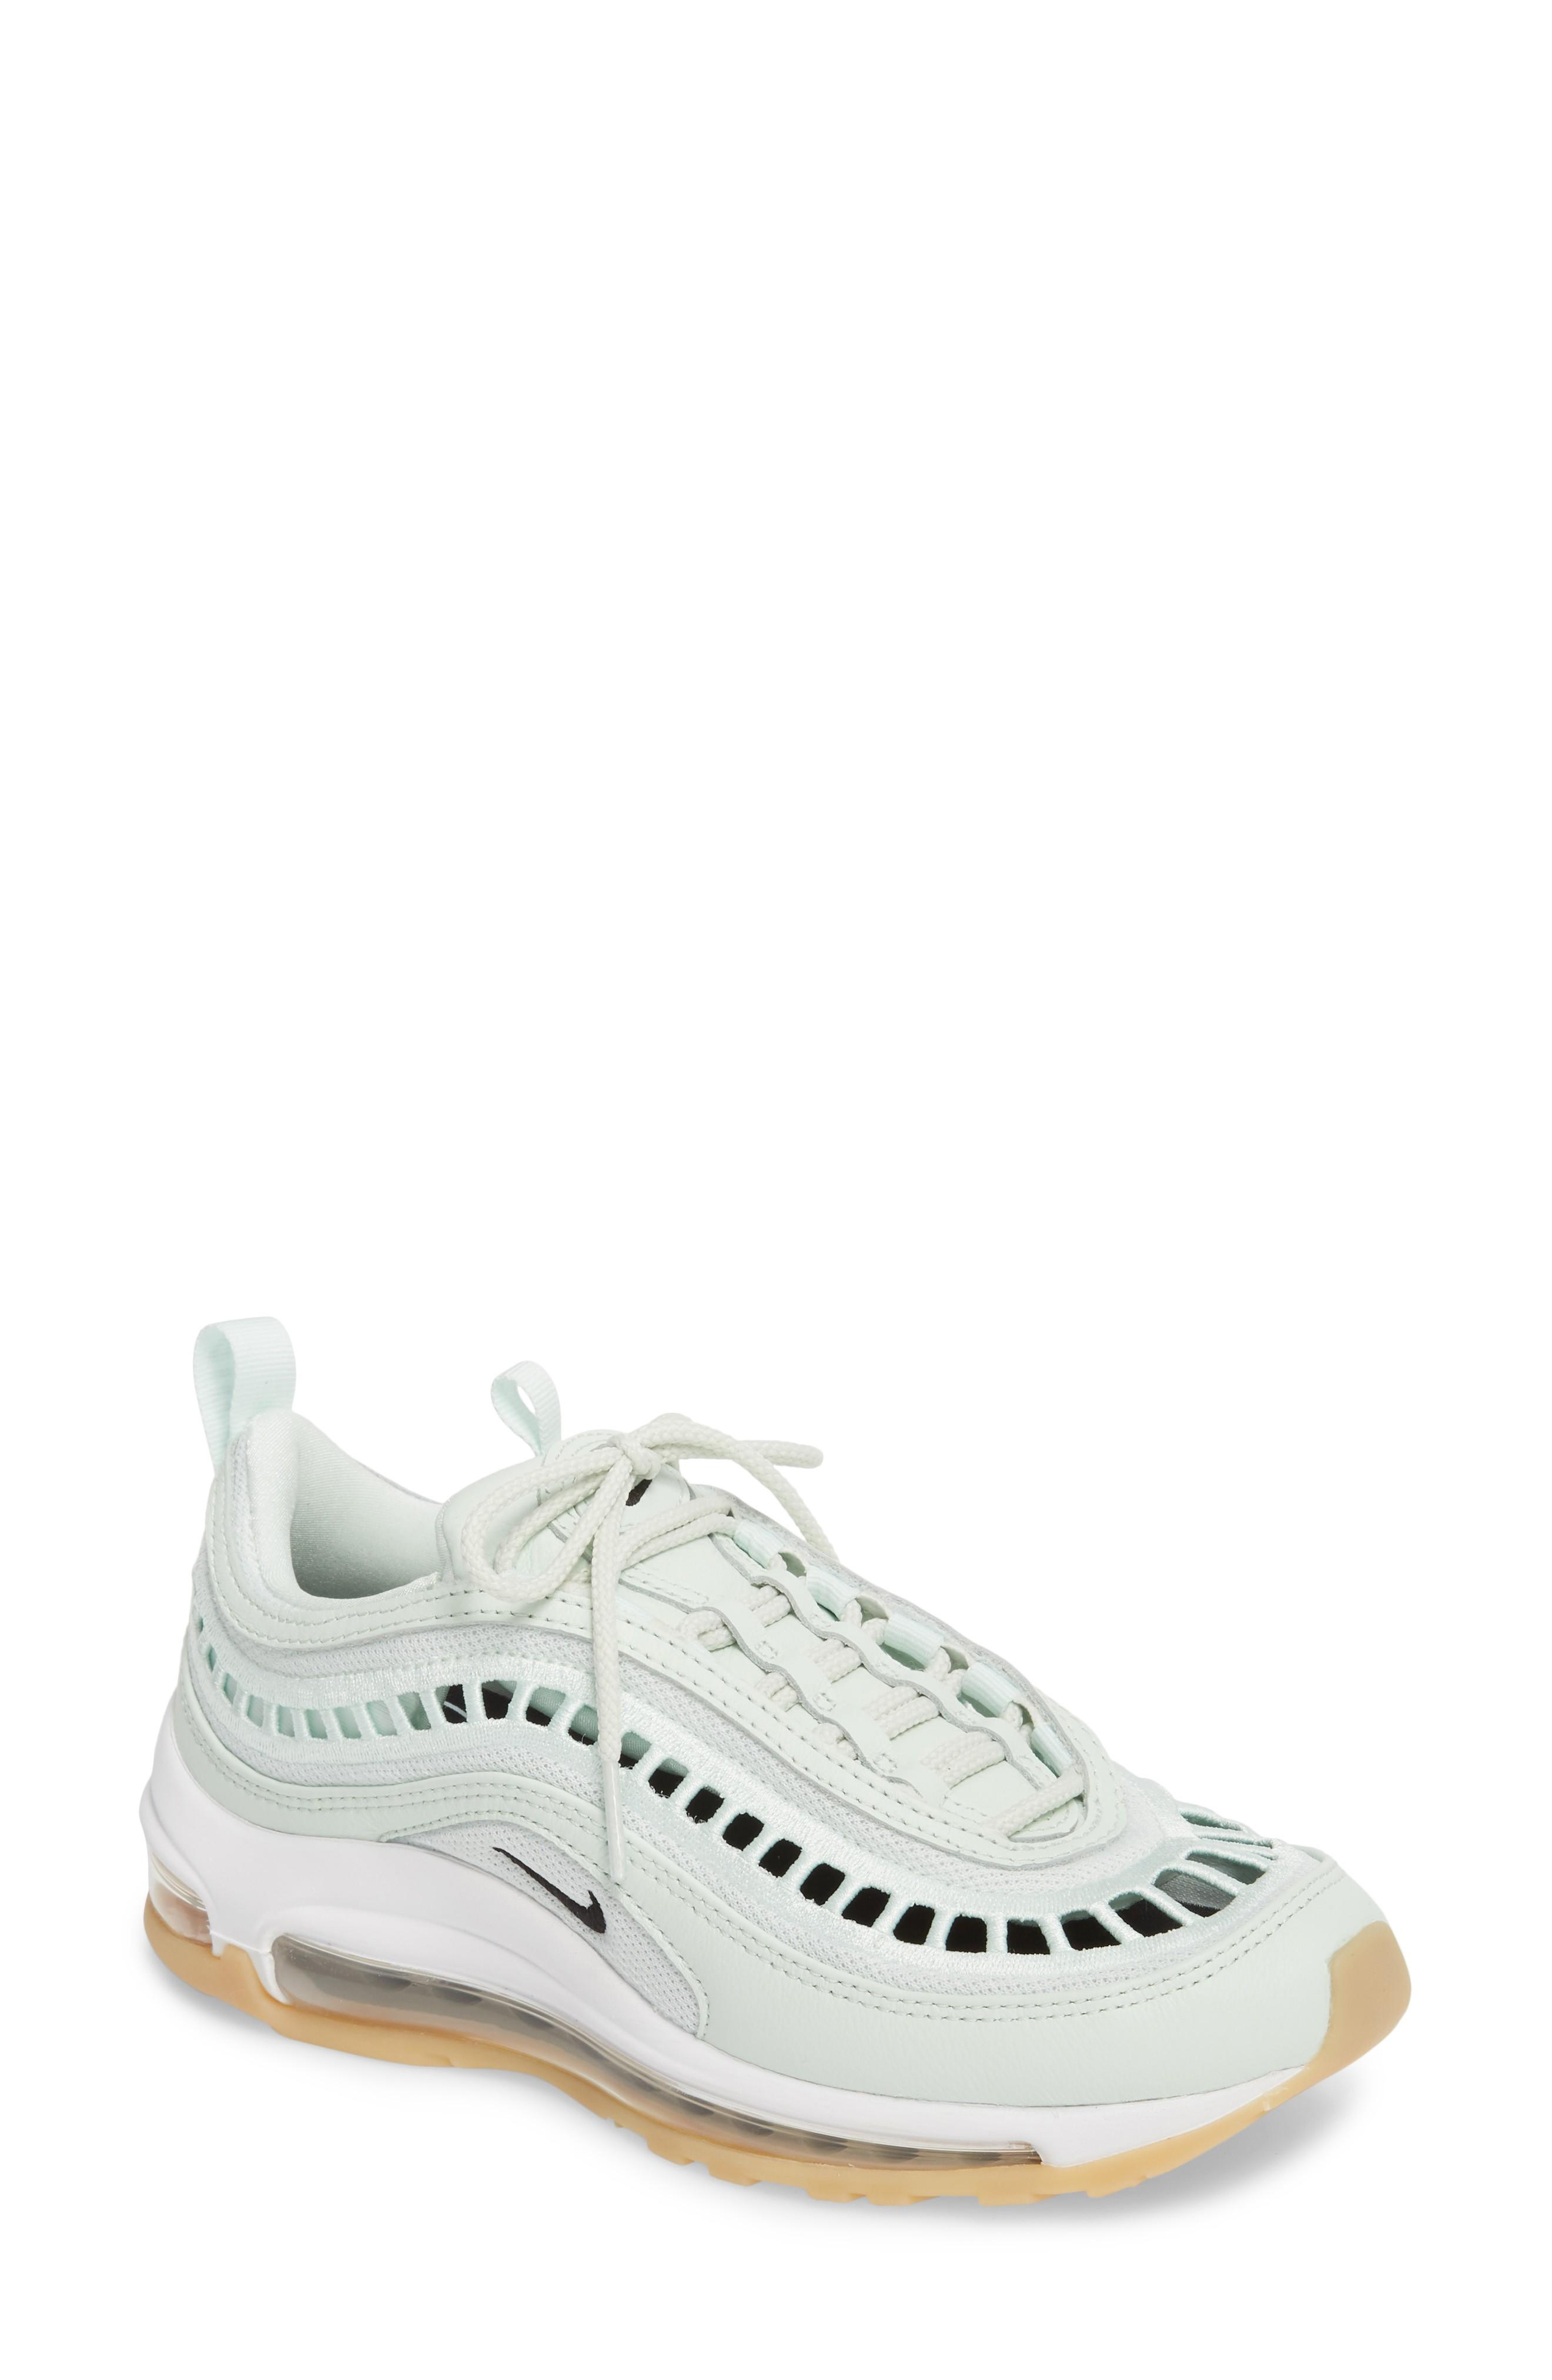 c566a1a797 Nike Air Max 97 Ultra '17 Si Sneaker In Barely Green/ Black | ModeSens